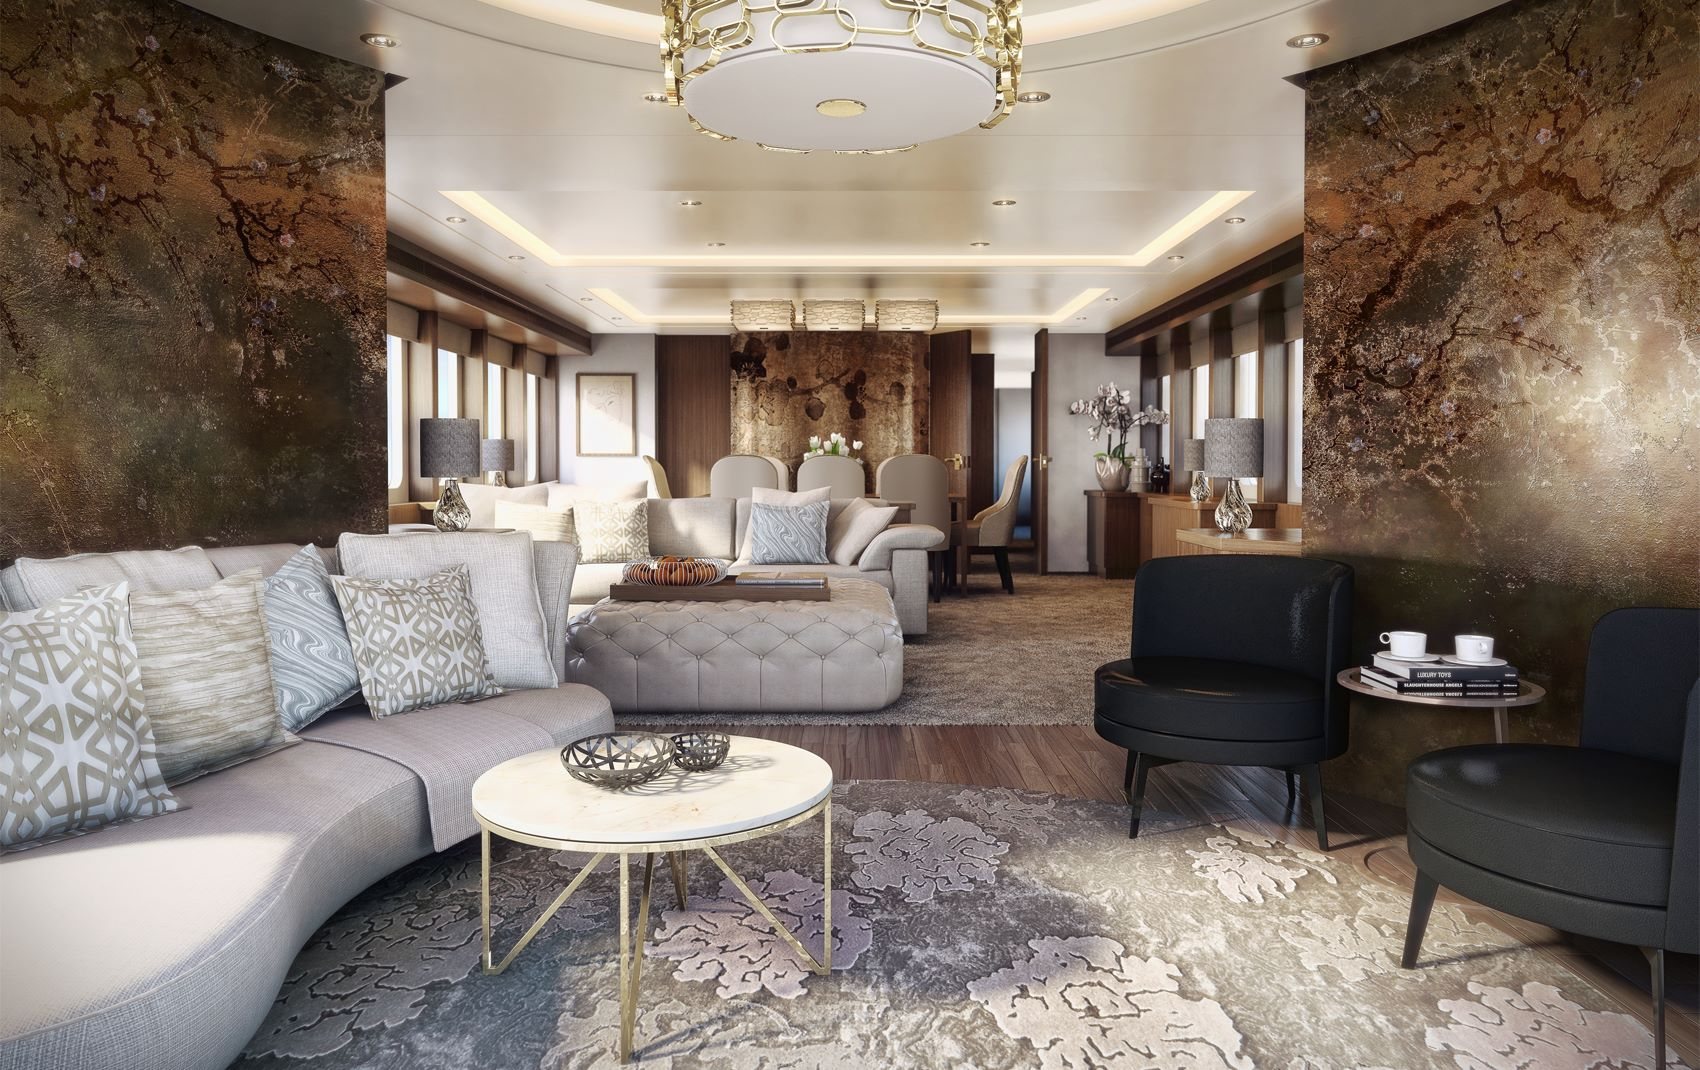 luxury london interior in a yacht